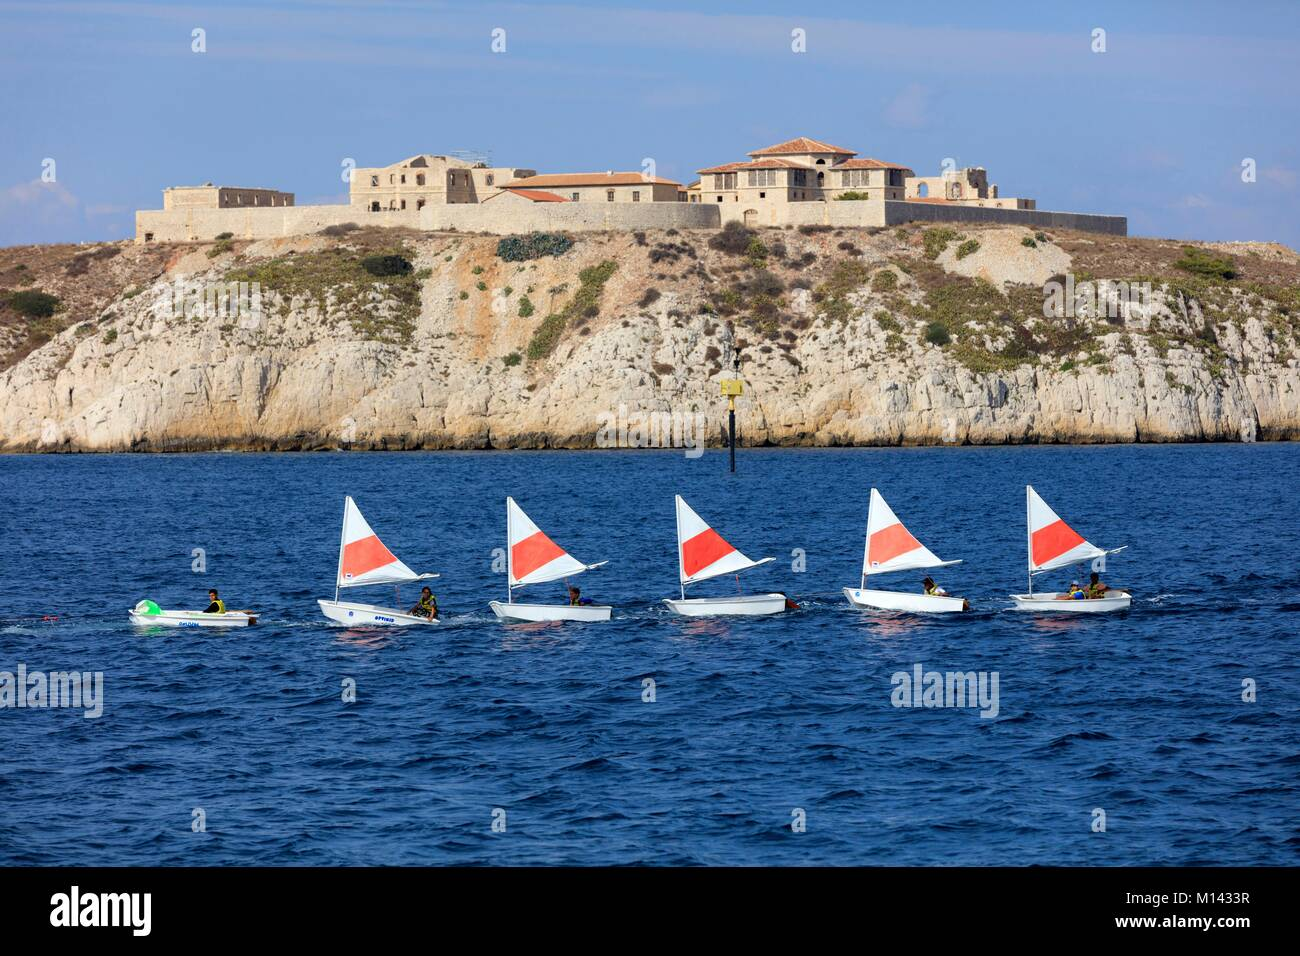 France, Bouches du Rhone, Calanques National Park, Marseille, Frioul Islands archipelago, Ratonneau Island, Caroline - Stock Image